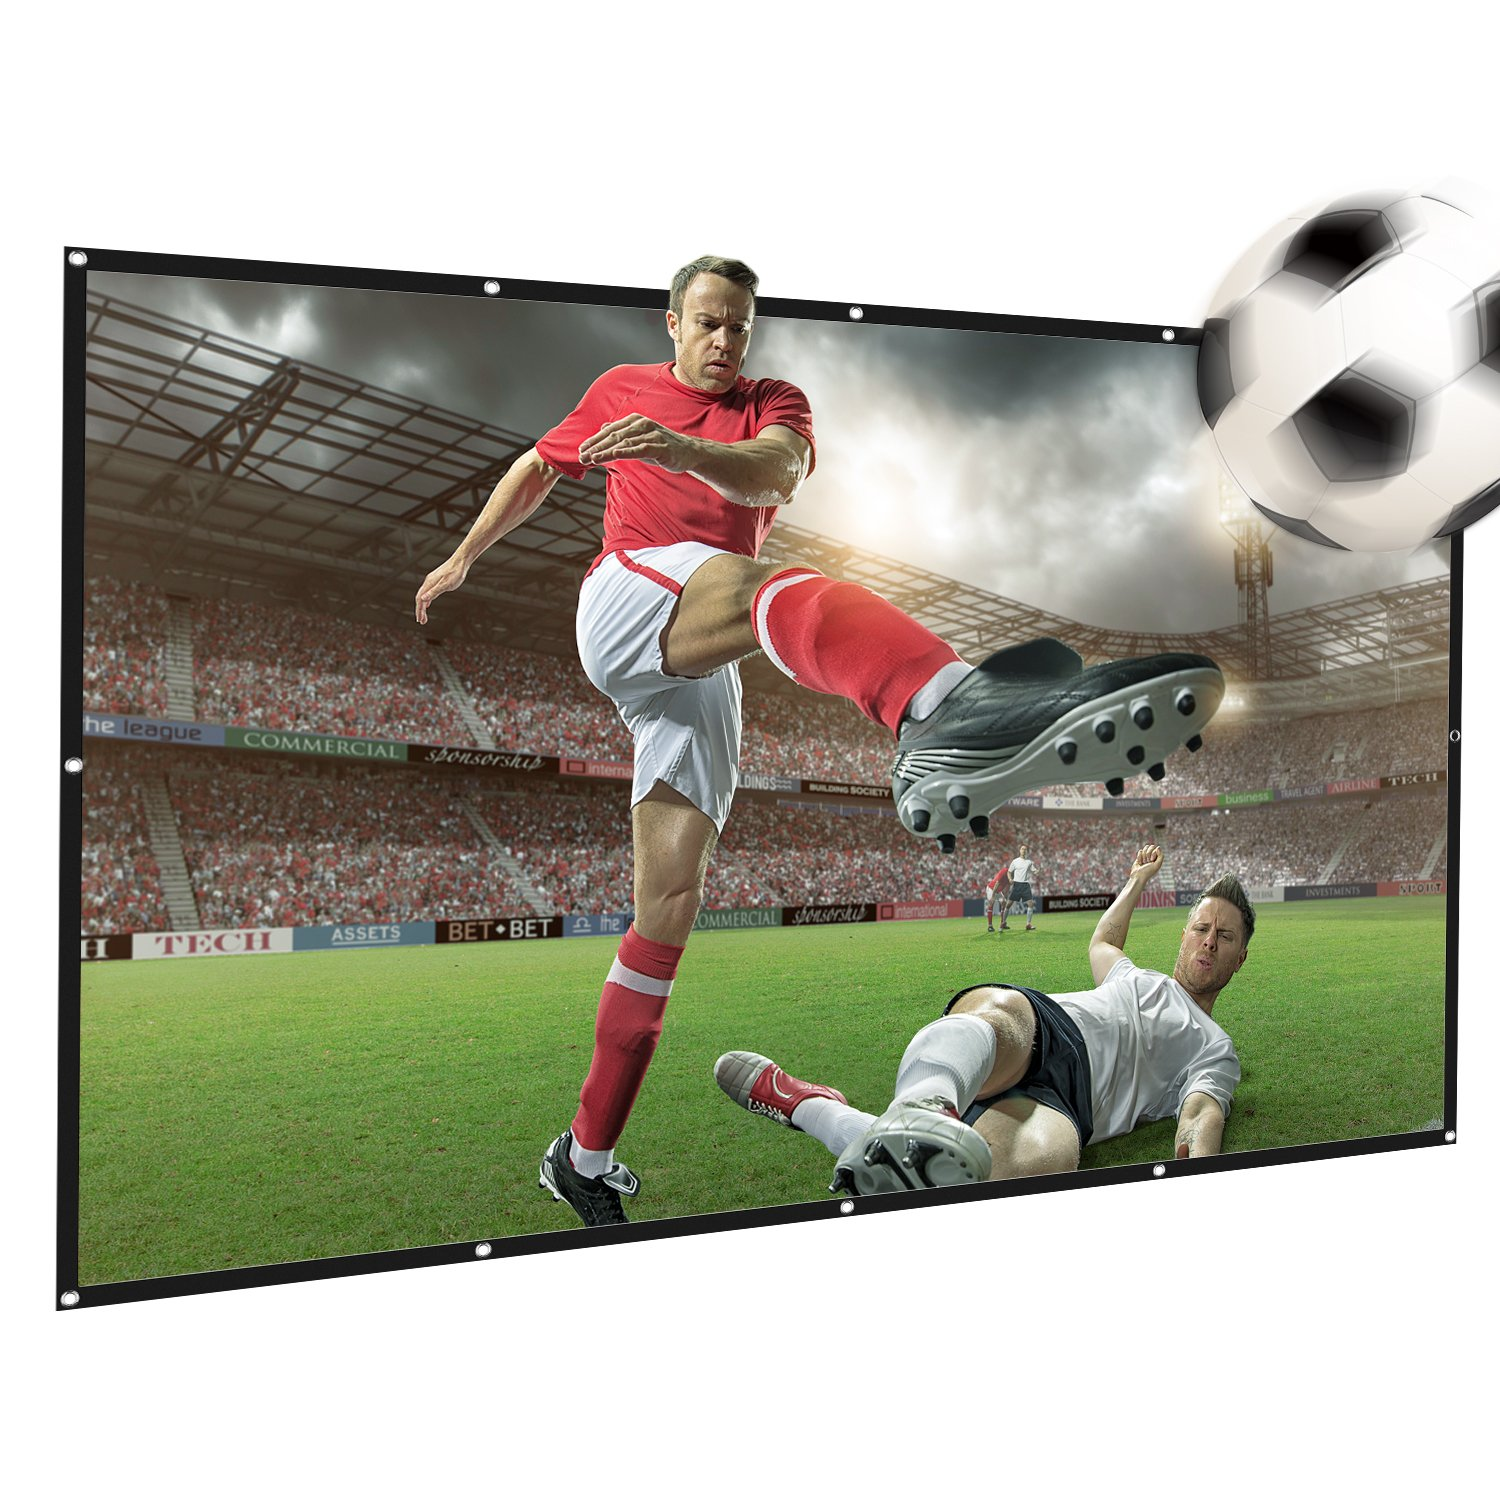 120 inch Projection Screen, Foldable Portable Projector Movies Screen, 16:9 HD Anti-Crease, Perfect Suit for Home Cinema Theater, Outdoor & Indoor Support Double Sided Projection, 2 lbs Only AwesomeWare DLRMB01